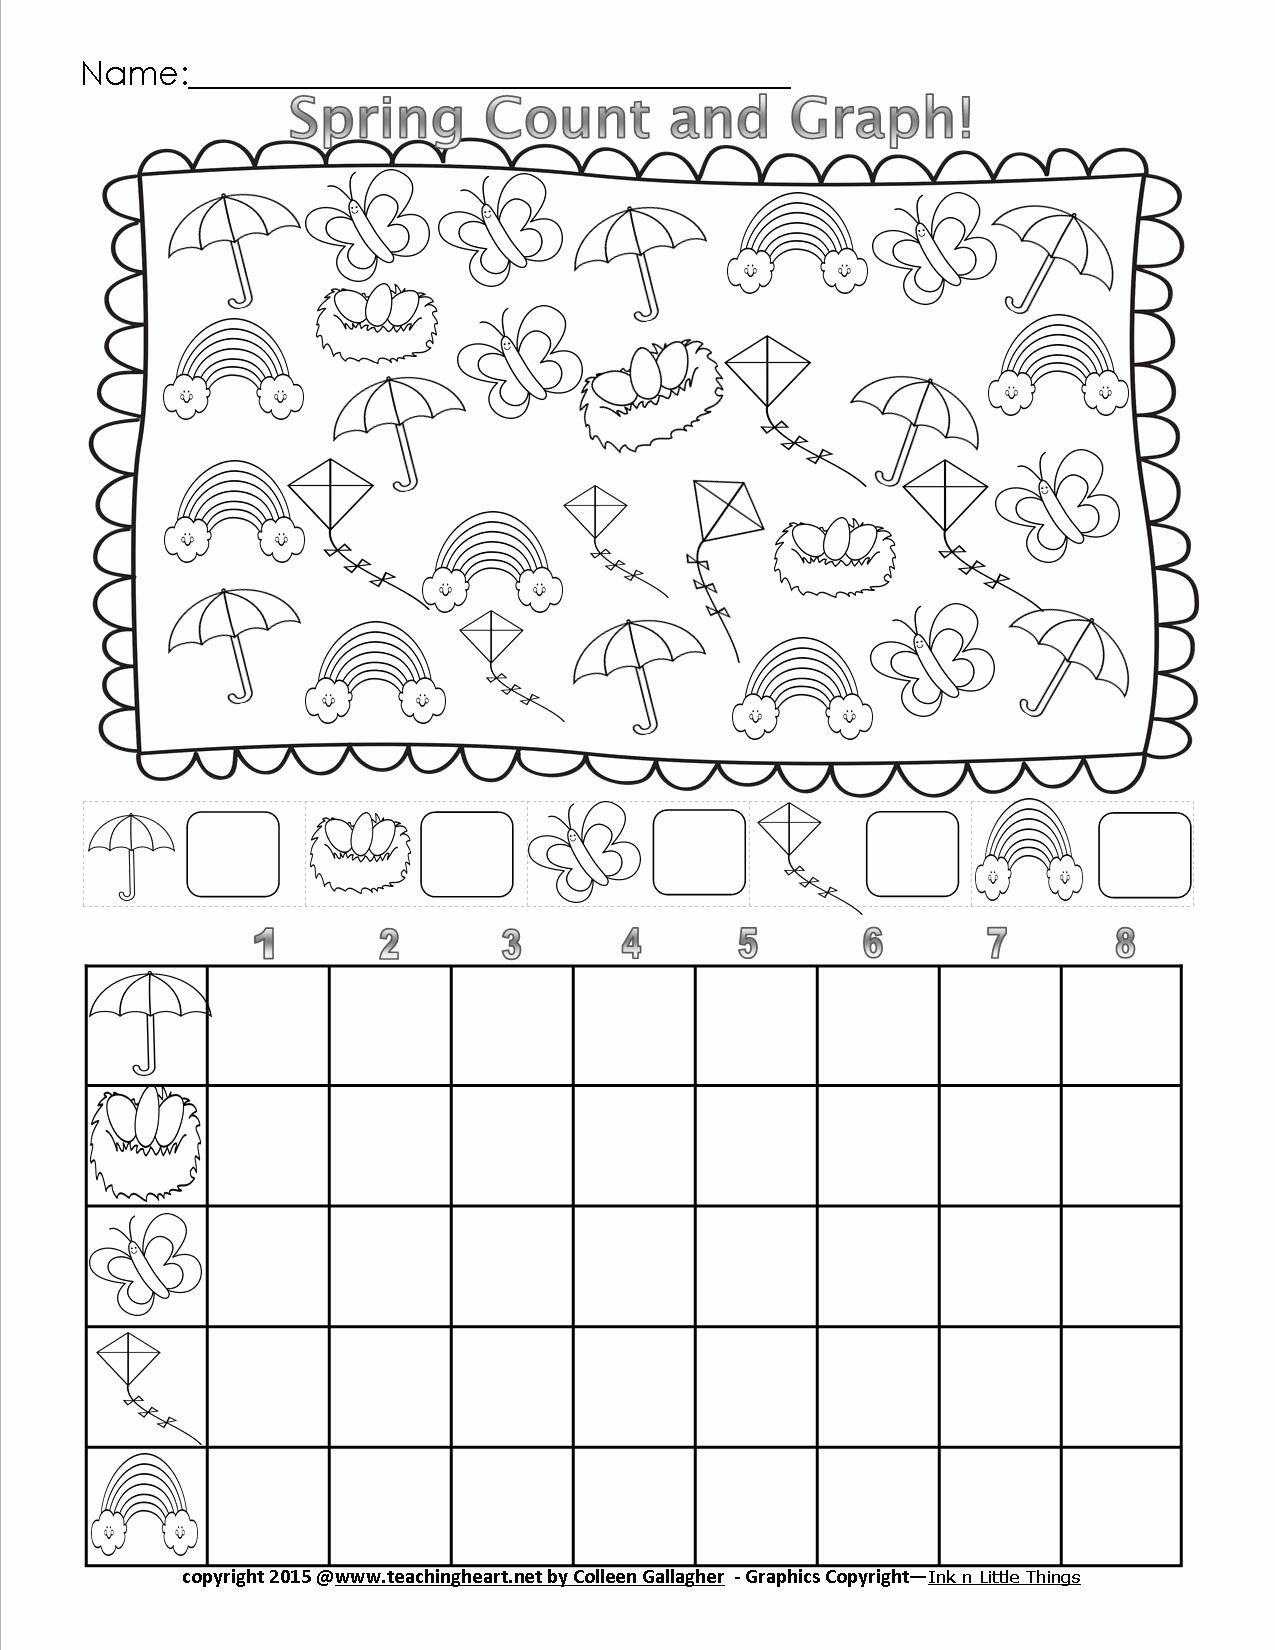 Graphing Worksheets for Preschoolers Kids Spring Count and Graph Free Teaching Heart Blog Graphing